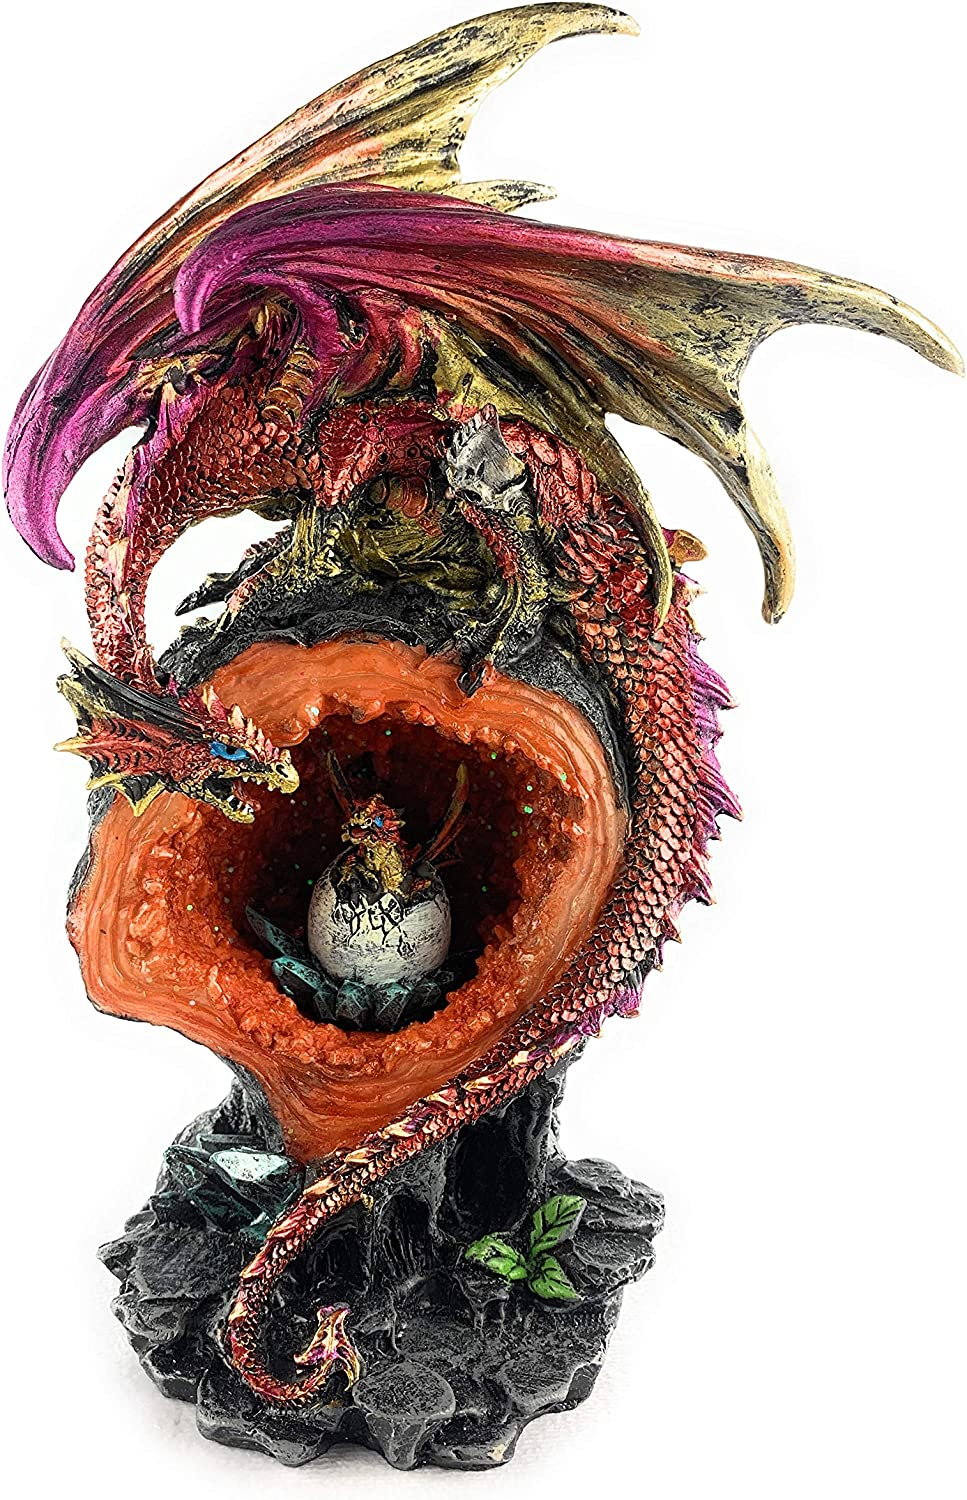 Dragon Mother On Faux Geode Sparkling Crystal Cave Protecting Baby Dragon in Egg Born Medieval Collectible Fantasy Figurine Statue Décor, 11 X 6.5 X 4.5 inches